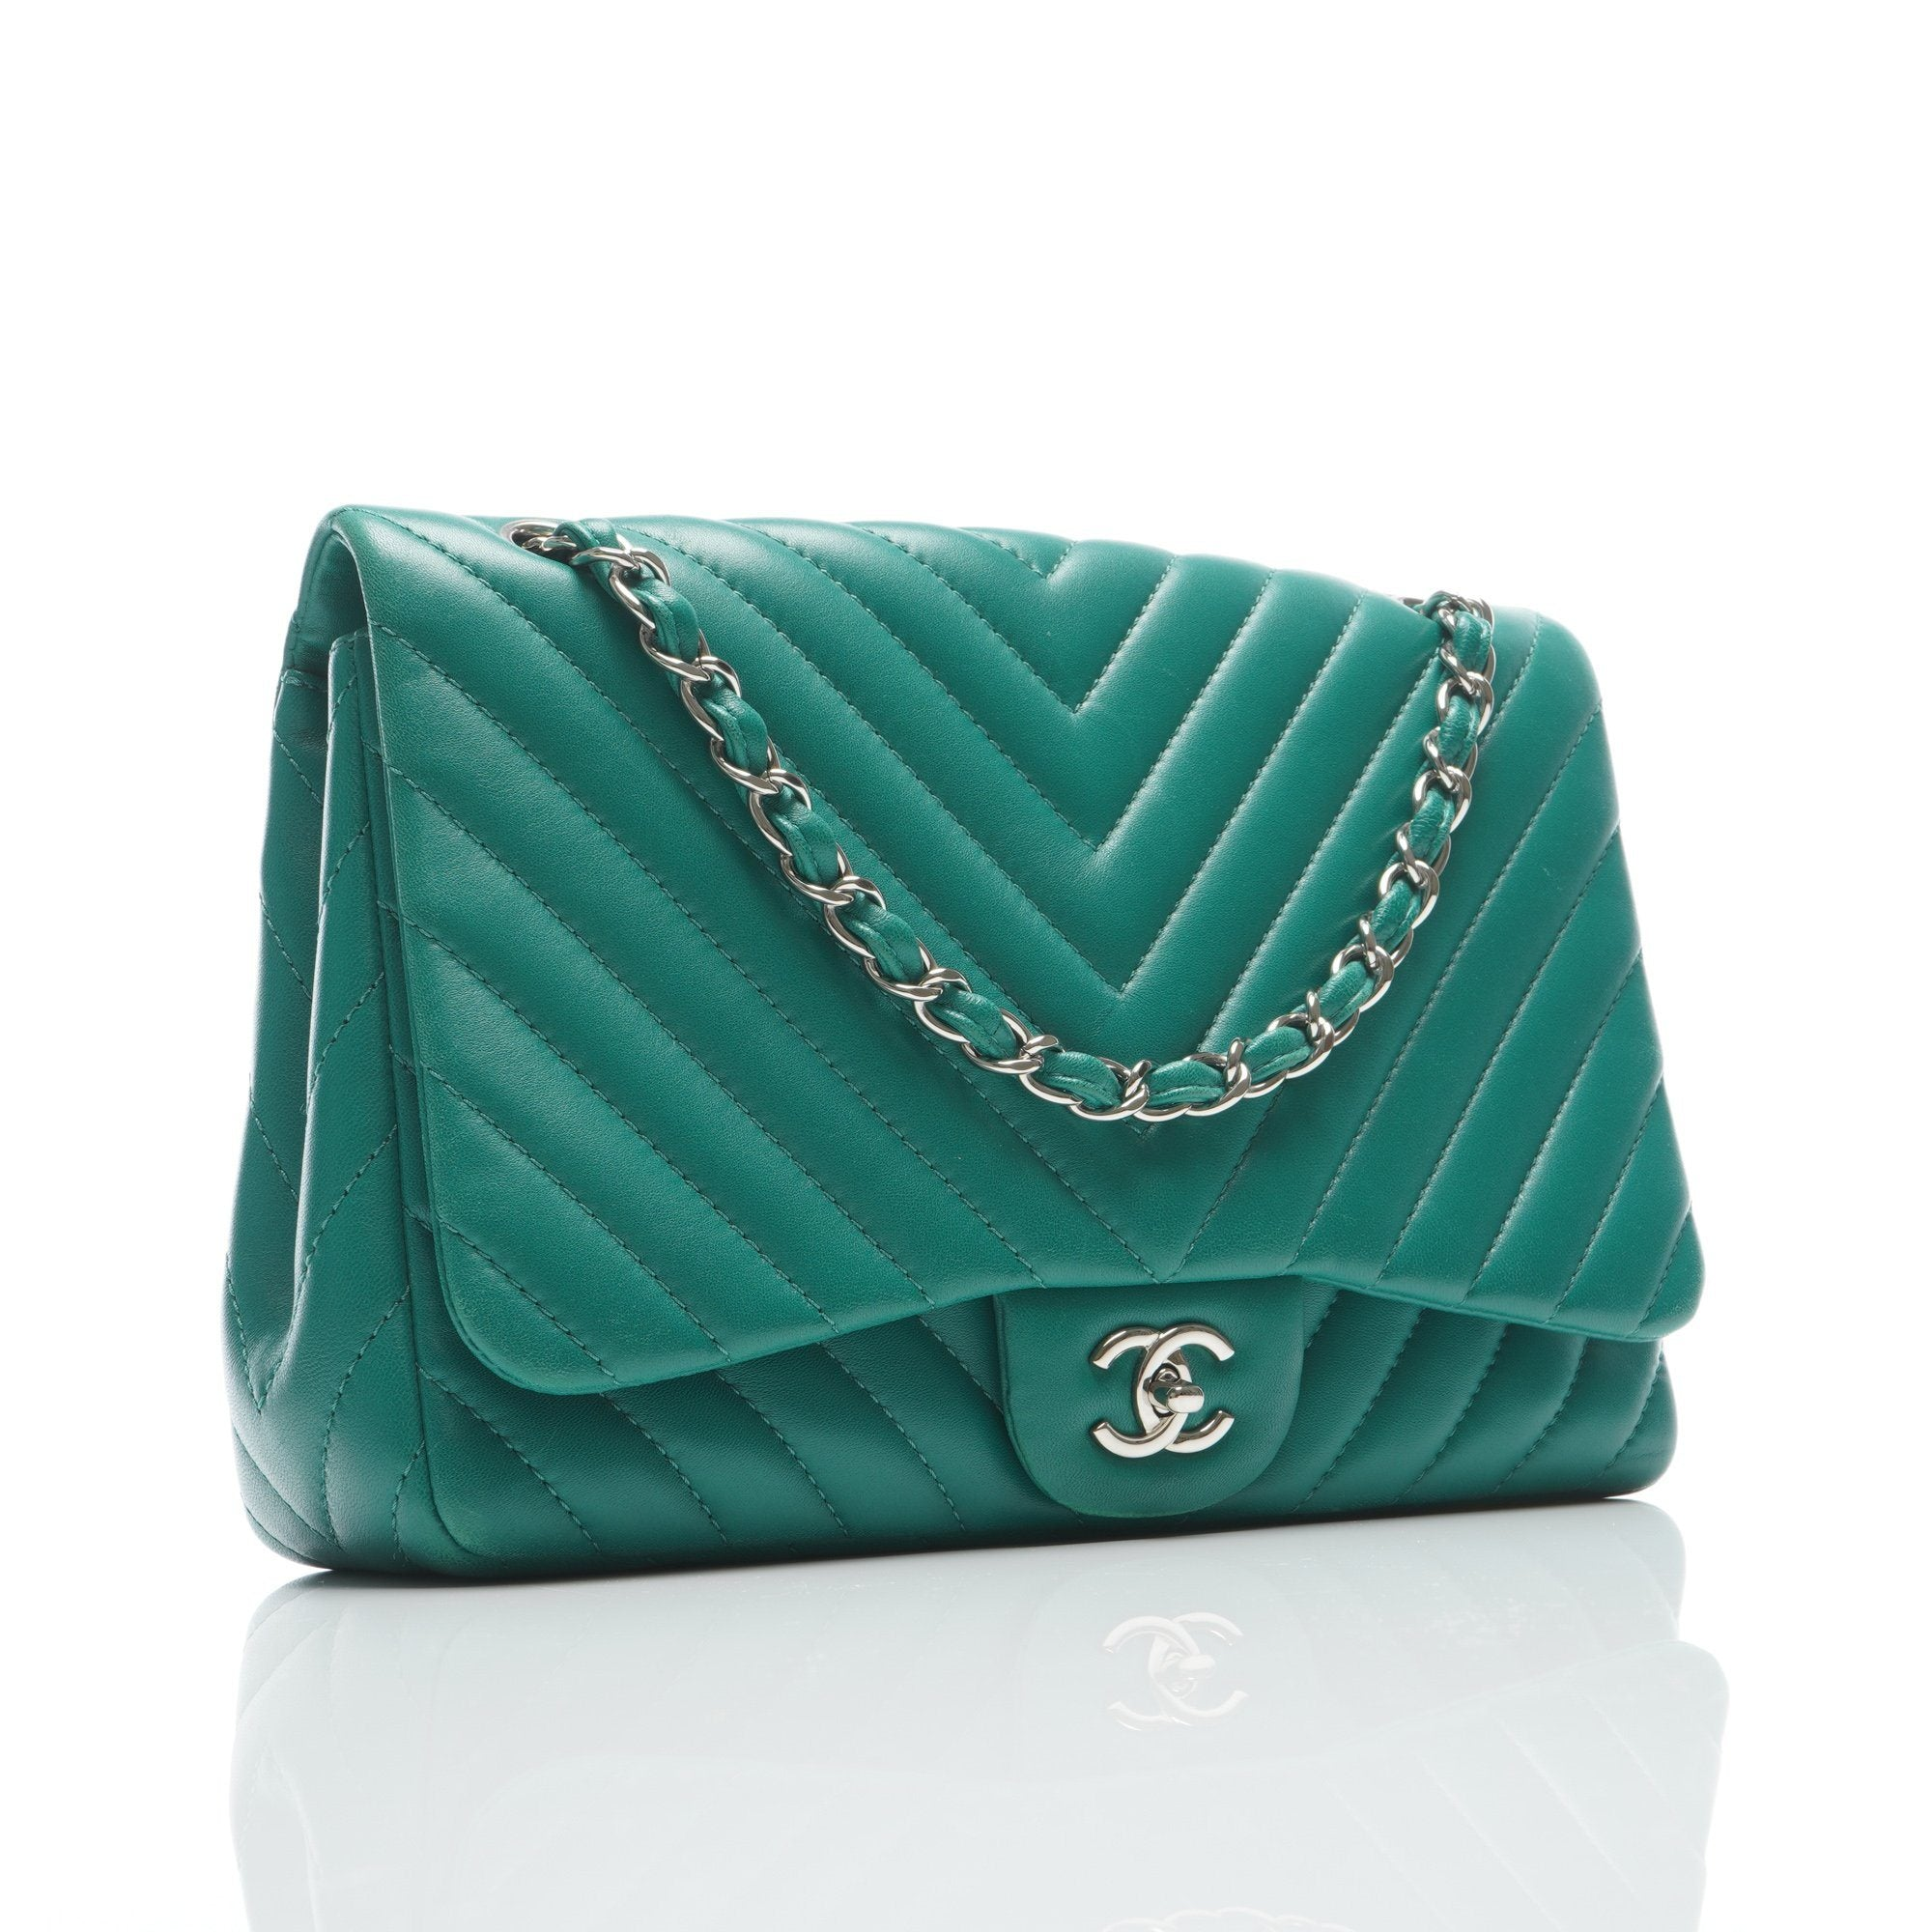 Chanel Green Chevron Quilted Leather Jumbo Classic Flap Bag